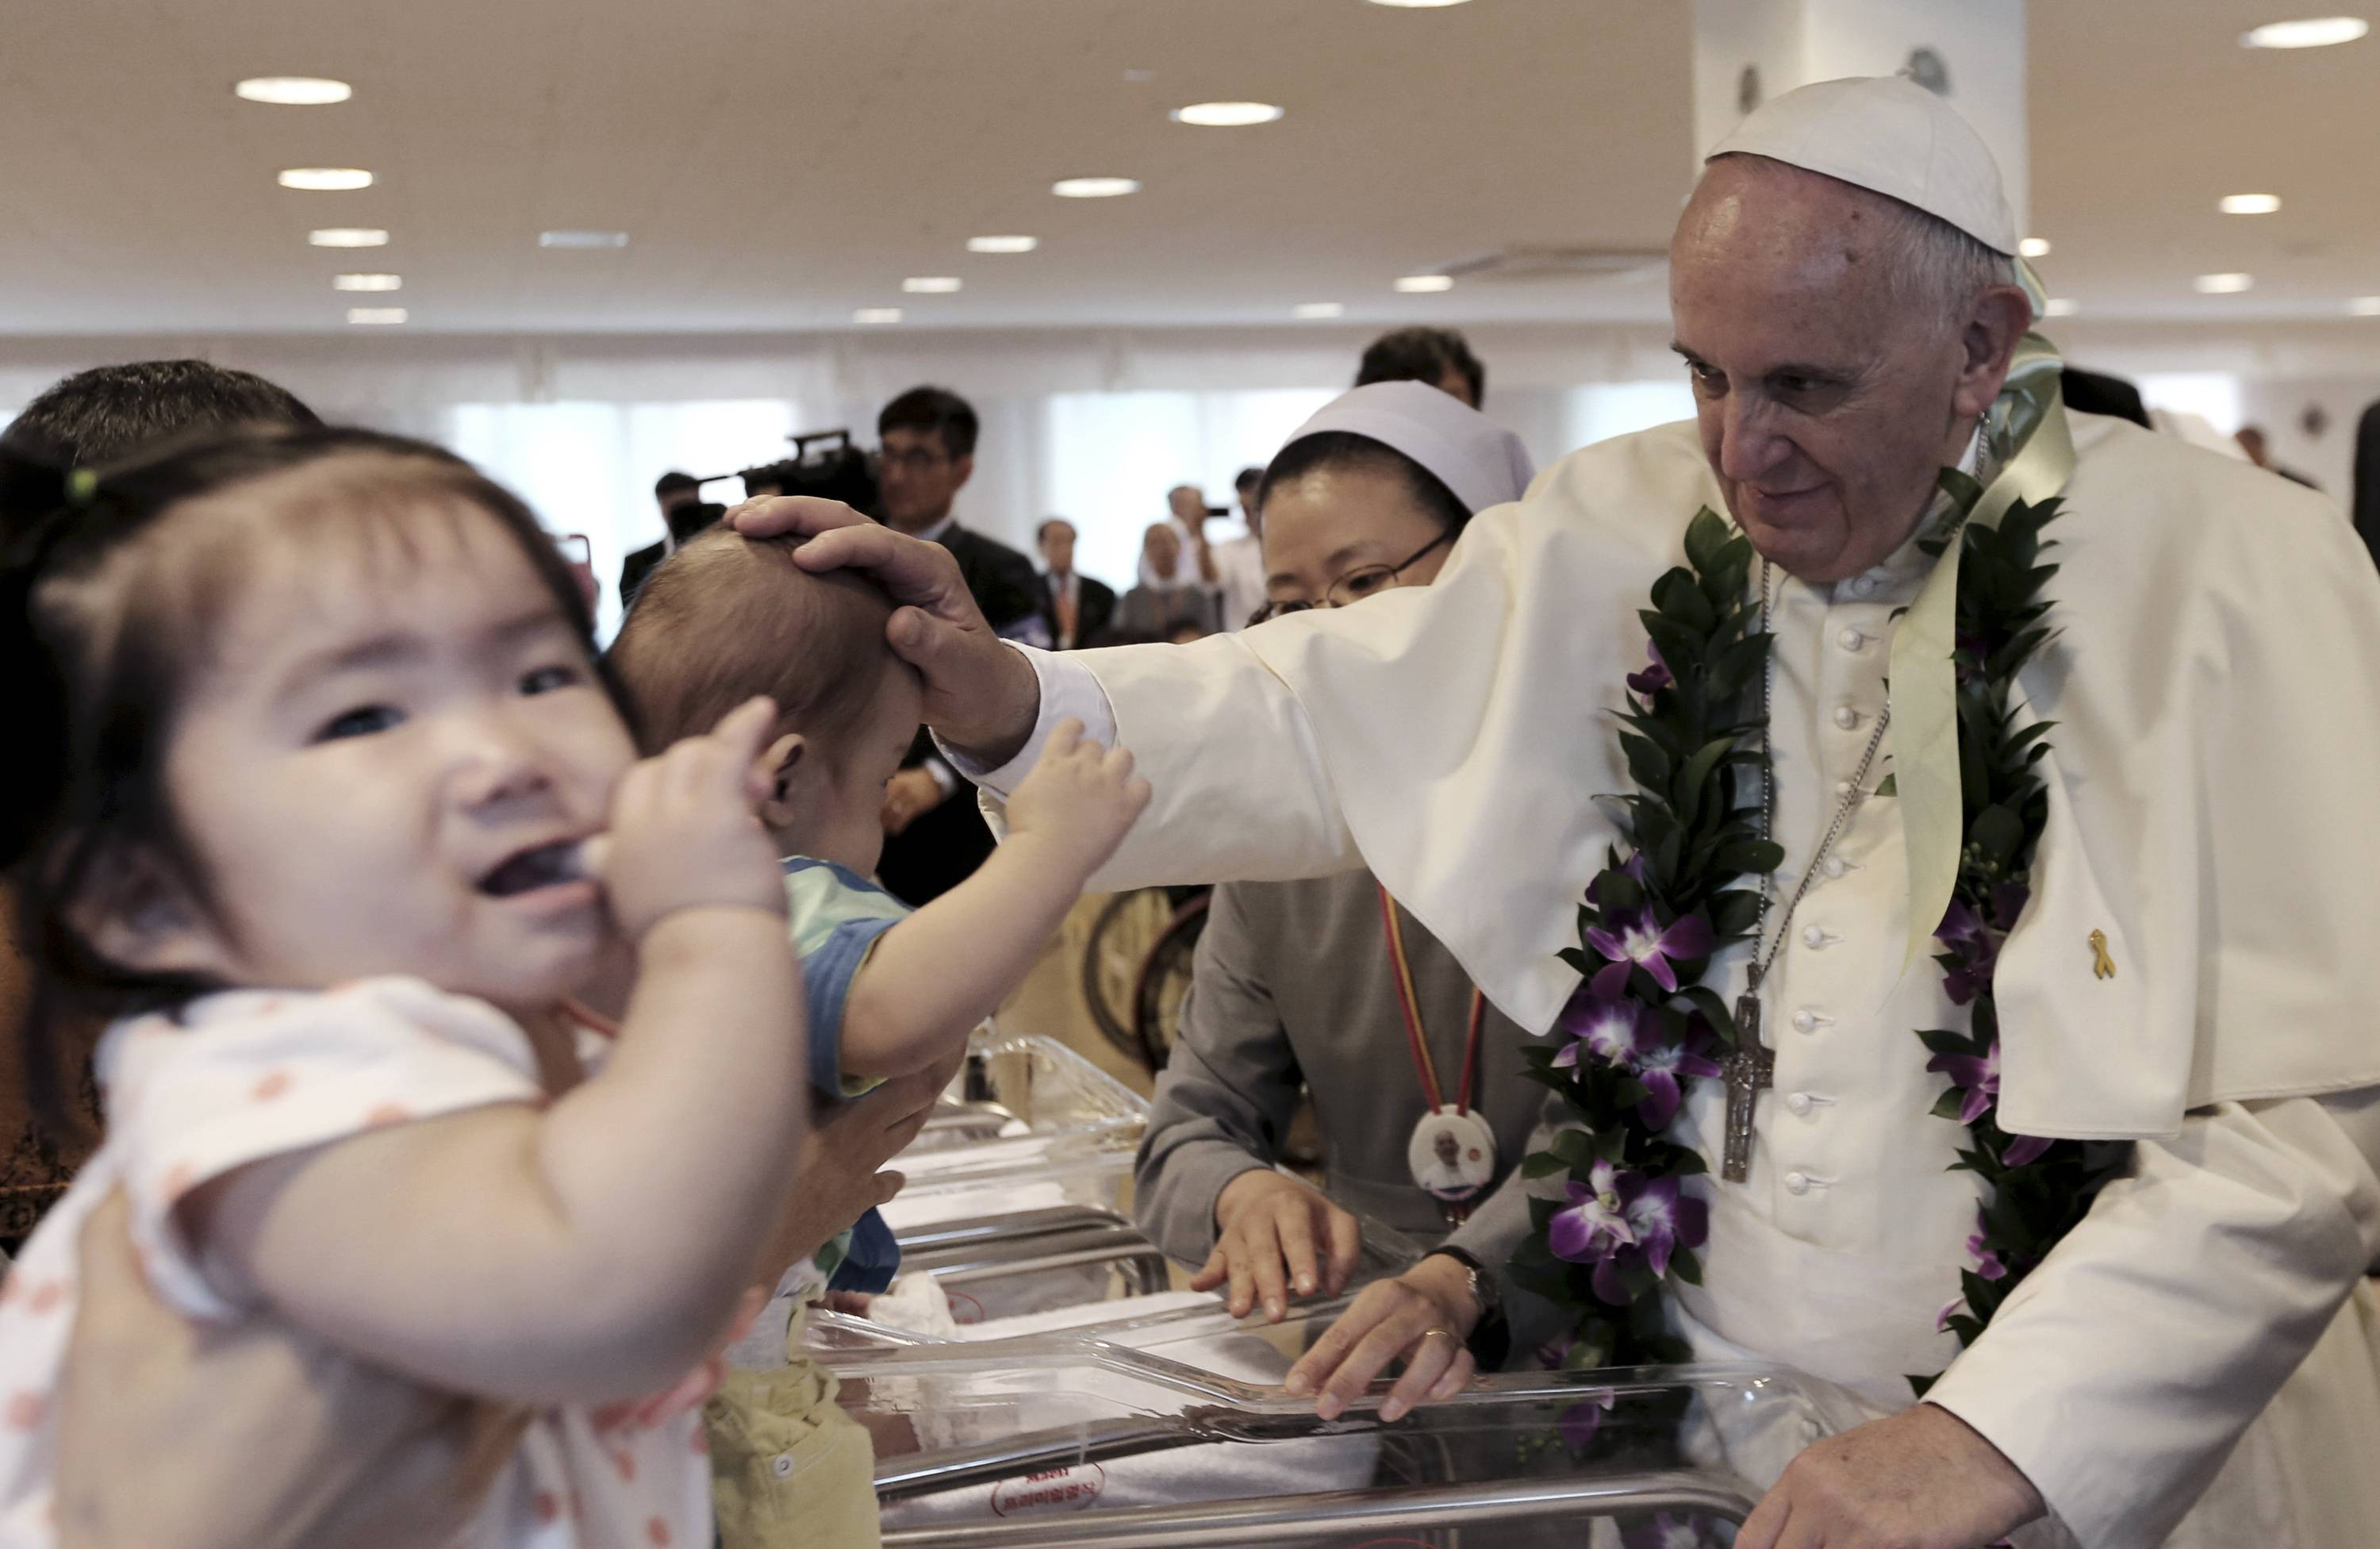 Pope Francis blesses a child who is planned to be adopted by a family, during his visit to the rehabilitation center for disabled people at Kkottongnae in Eumseong, South Korea, Saturday, Aug. 16.